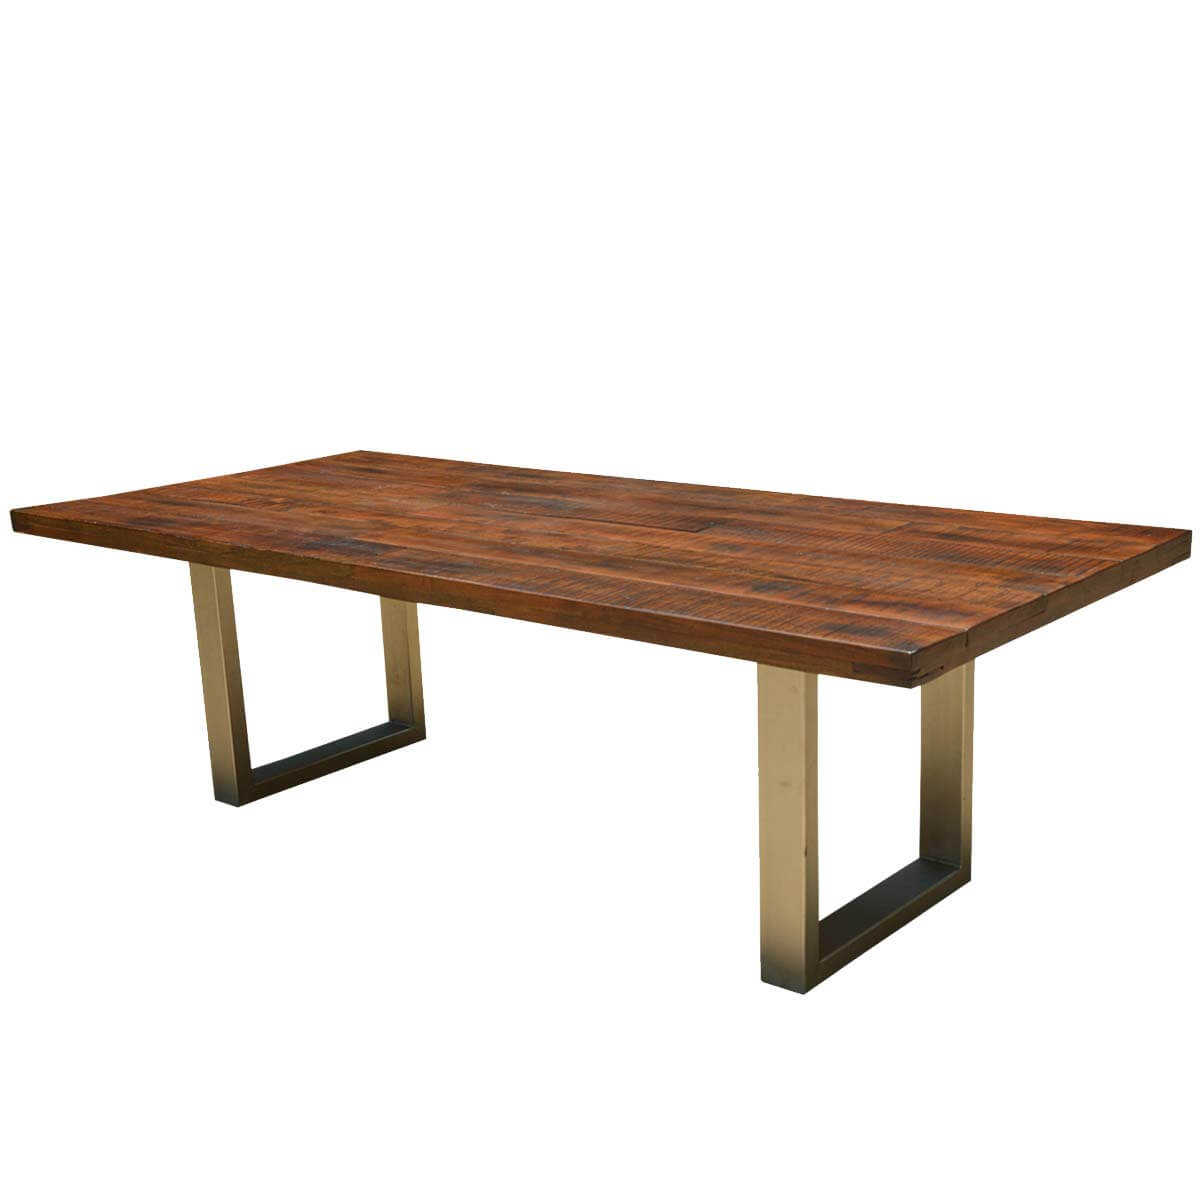 Acacia Lyon Large Contemporary Rustic Solid Wood